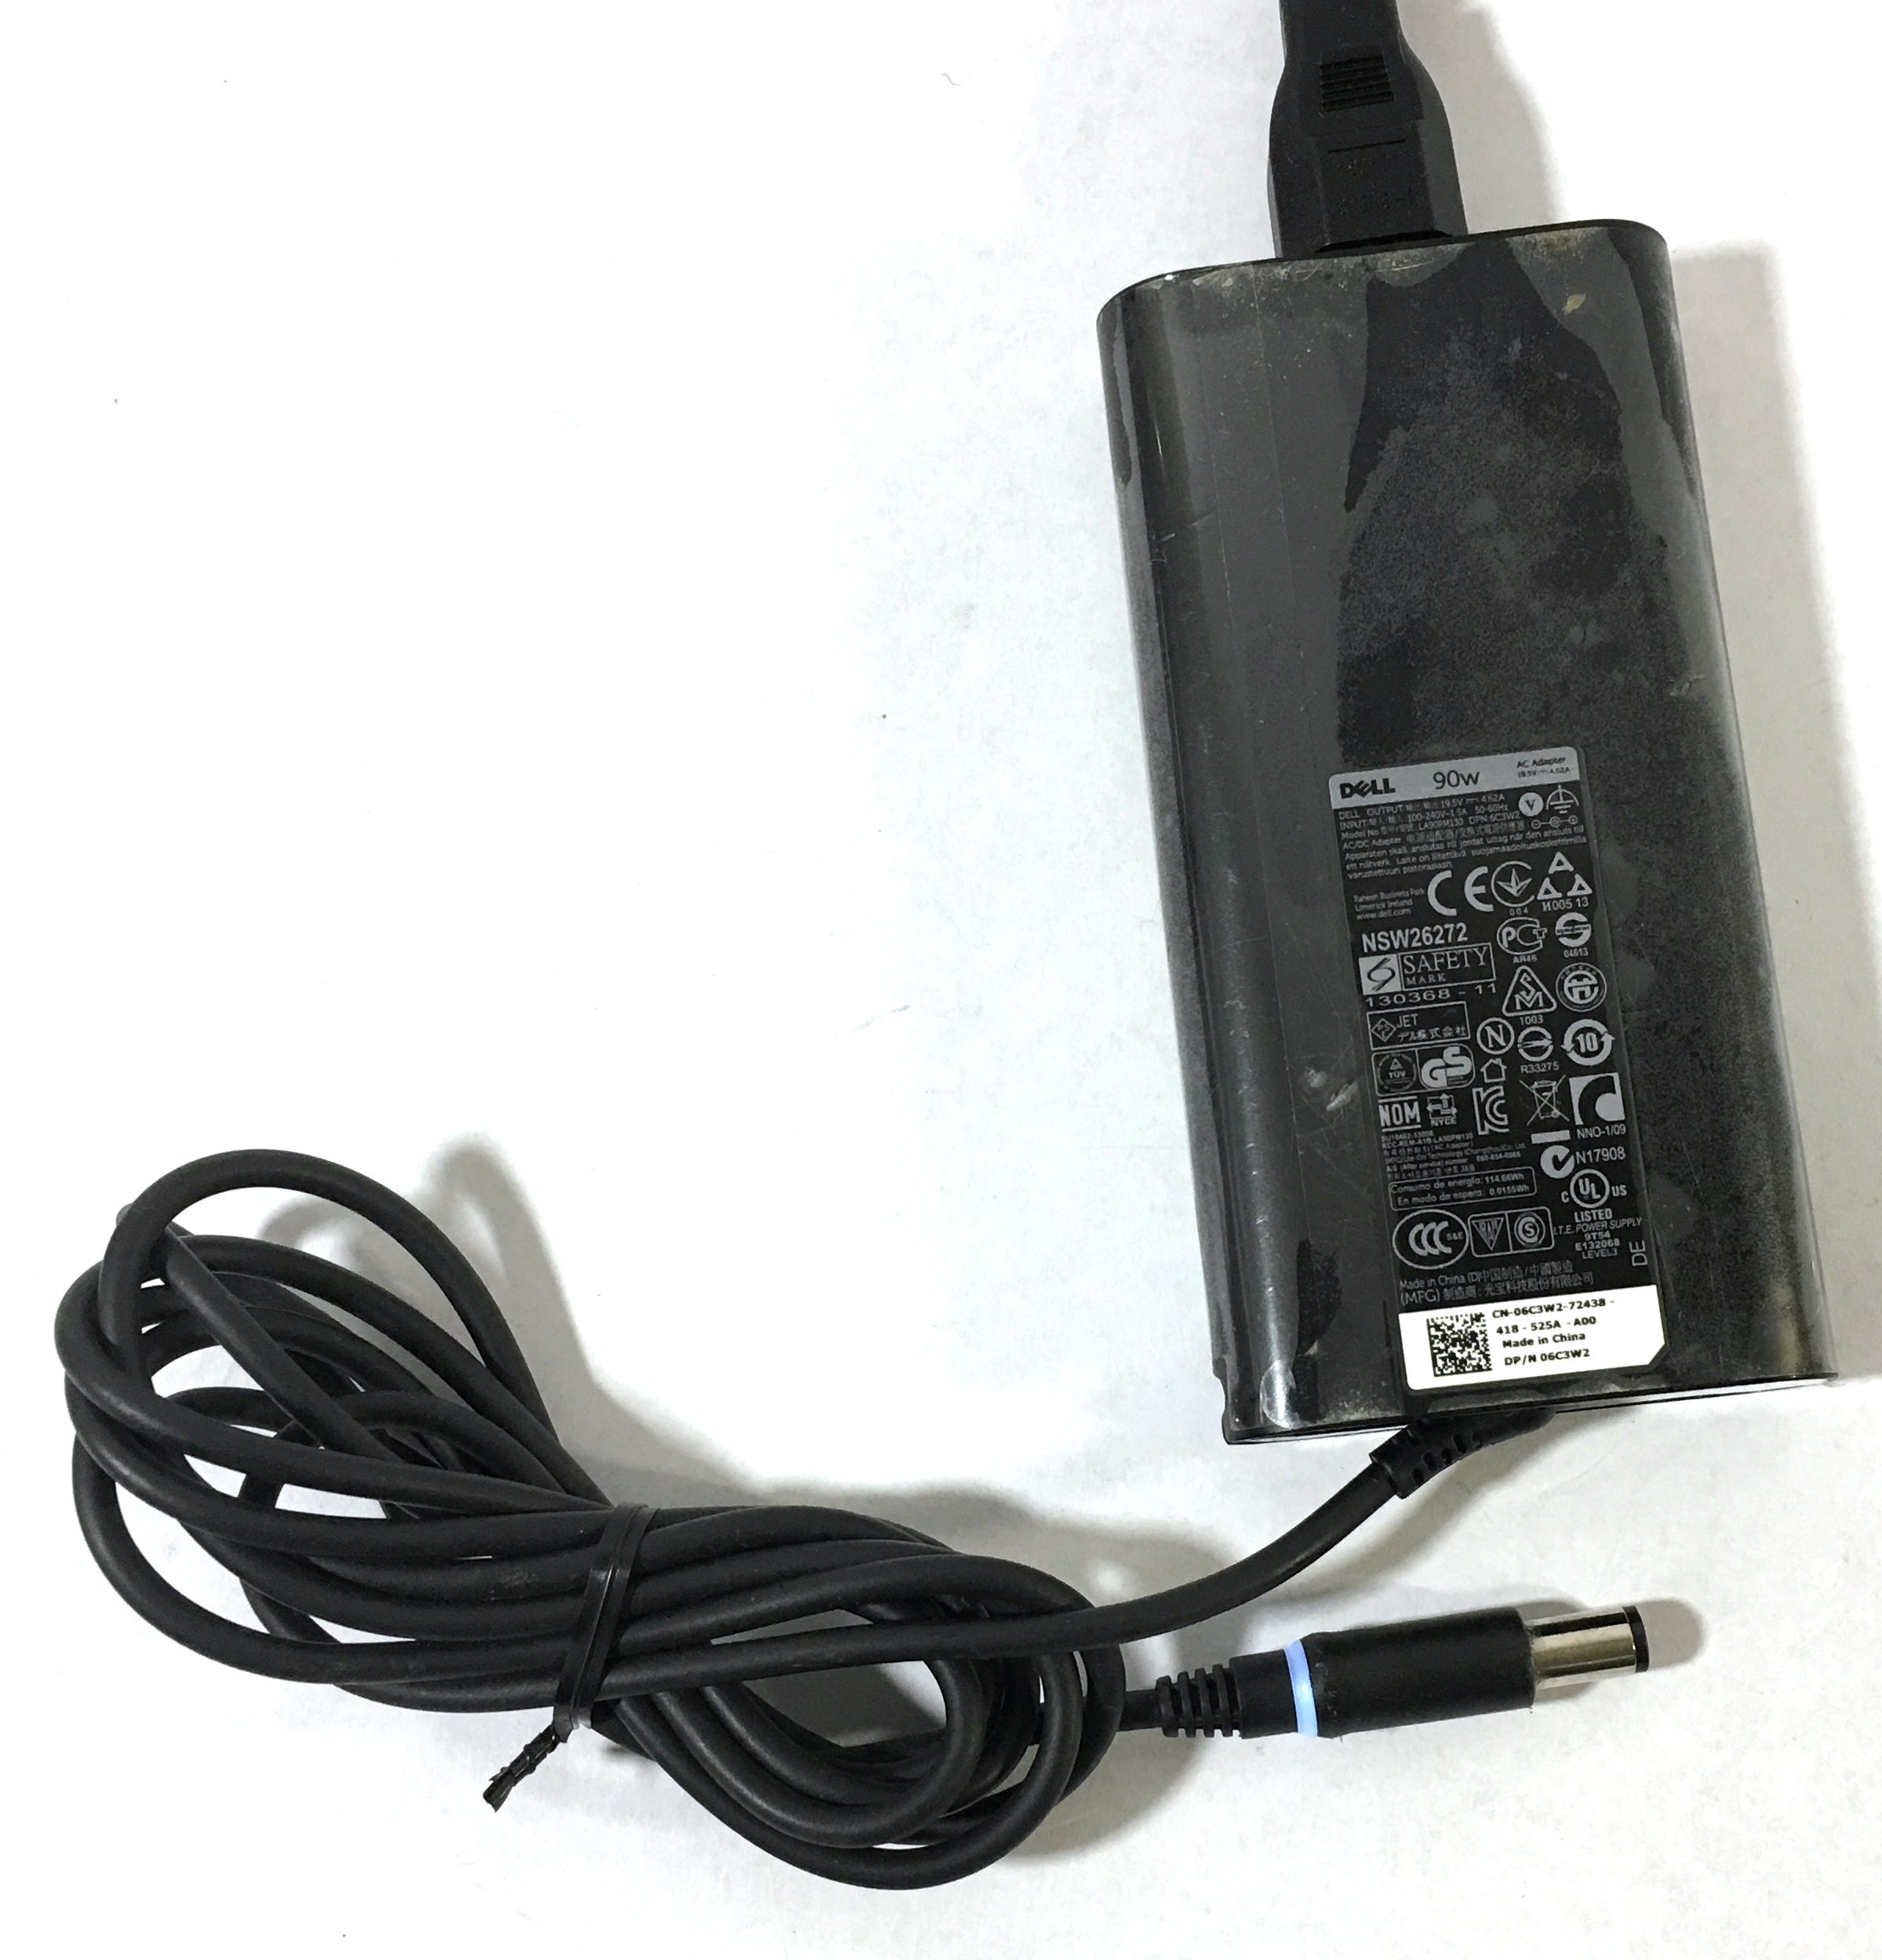 Dell 06C3W2 Chargers and 3 Pong cable